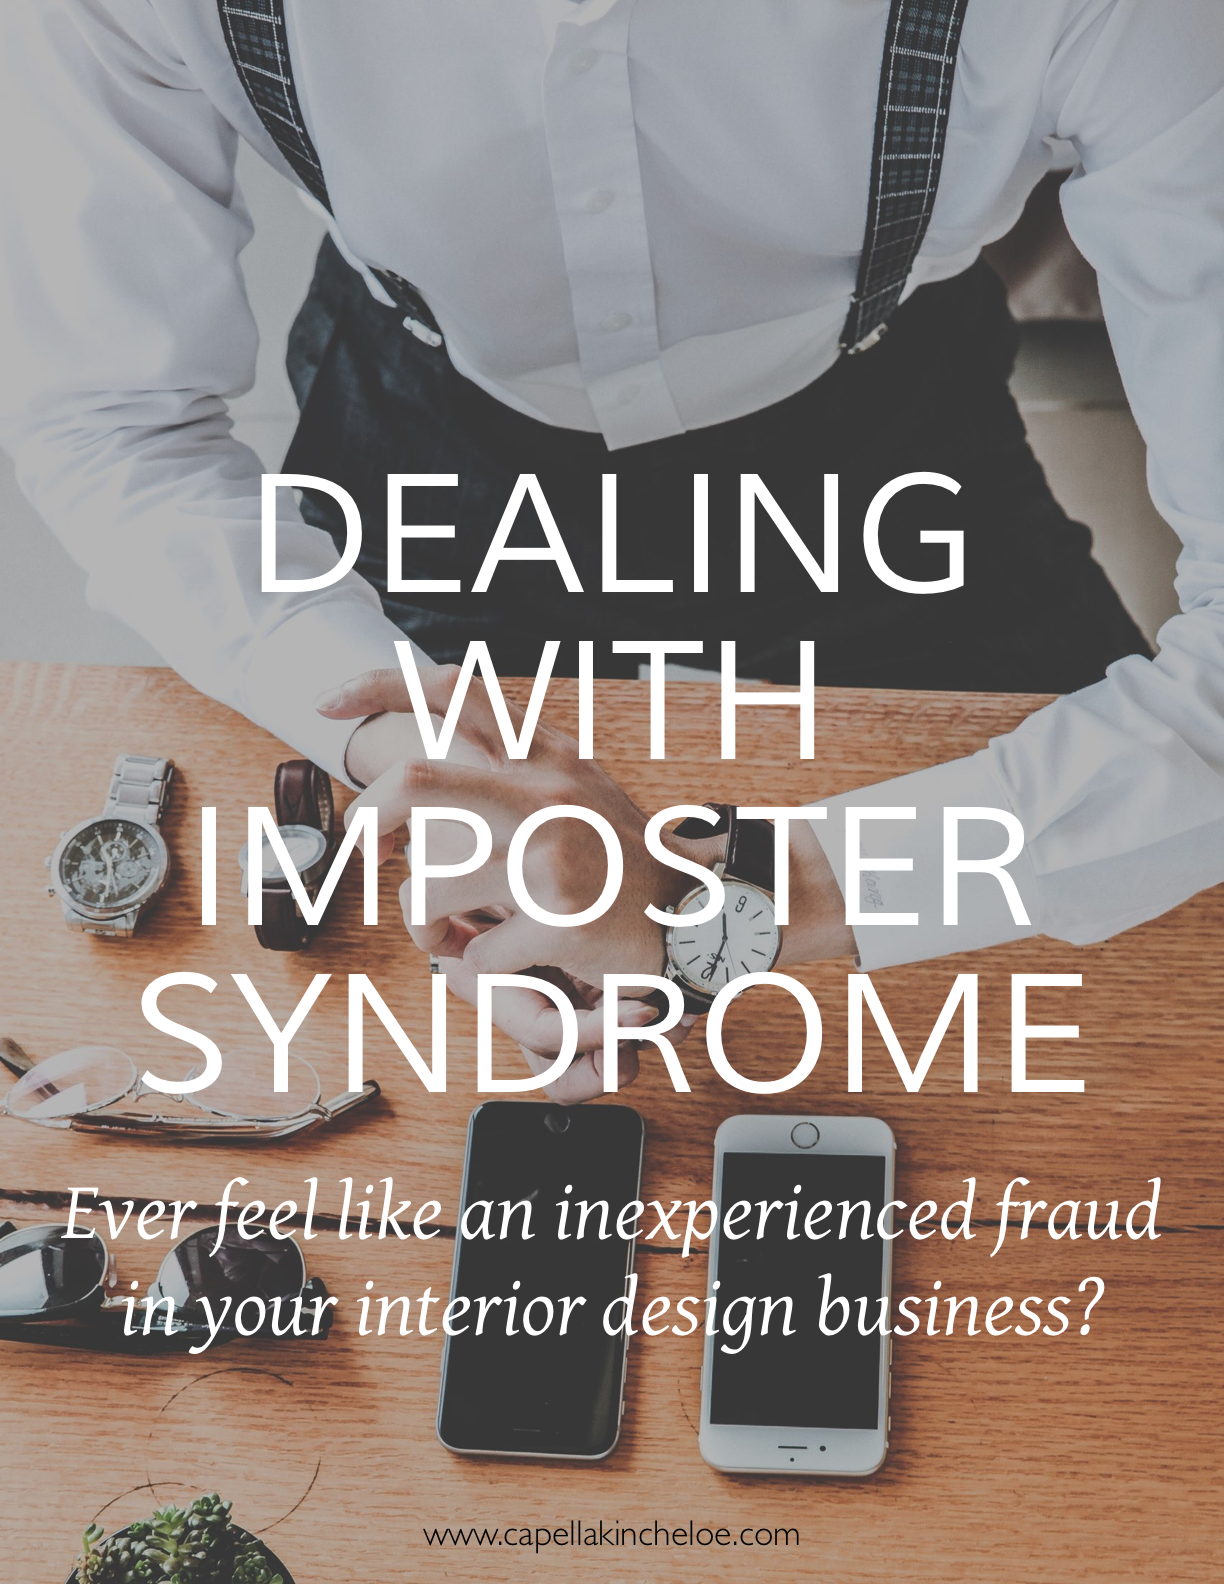 Ever feel like an inexperienced fraud in your interior design business? Here is what you can do. #interiordesignbusiness #interiordesignclients #capellakincheloe #cktradesecrets